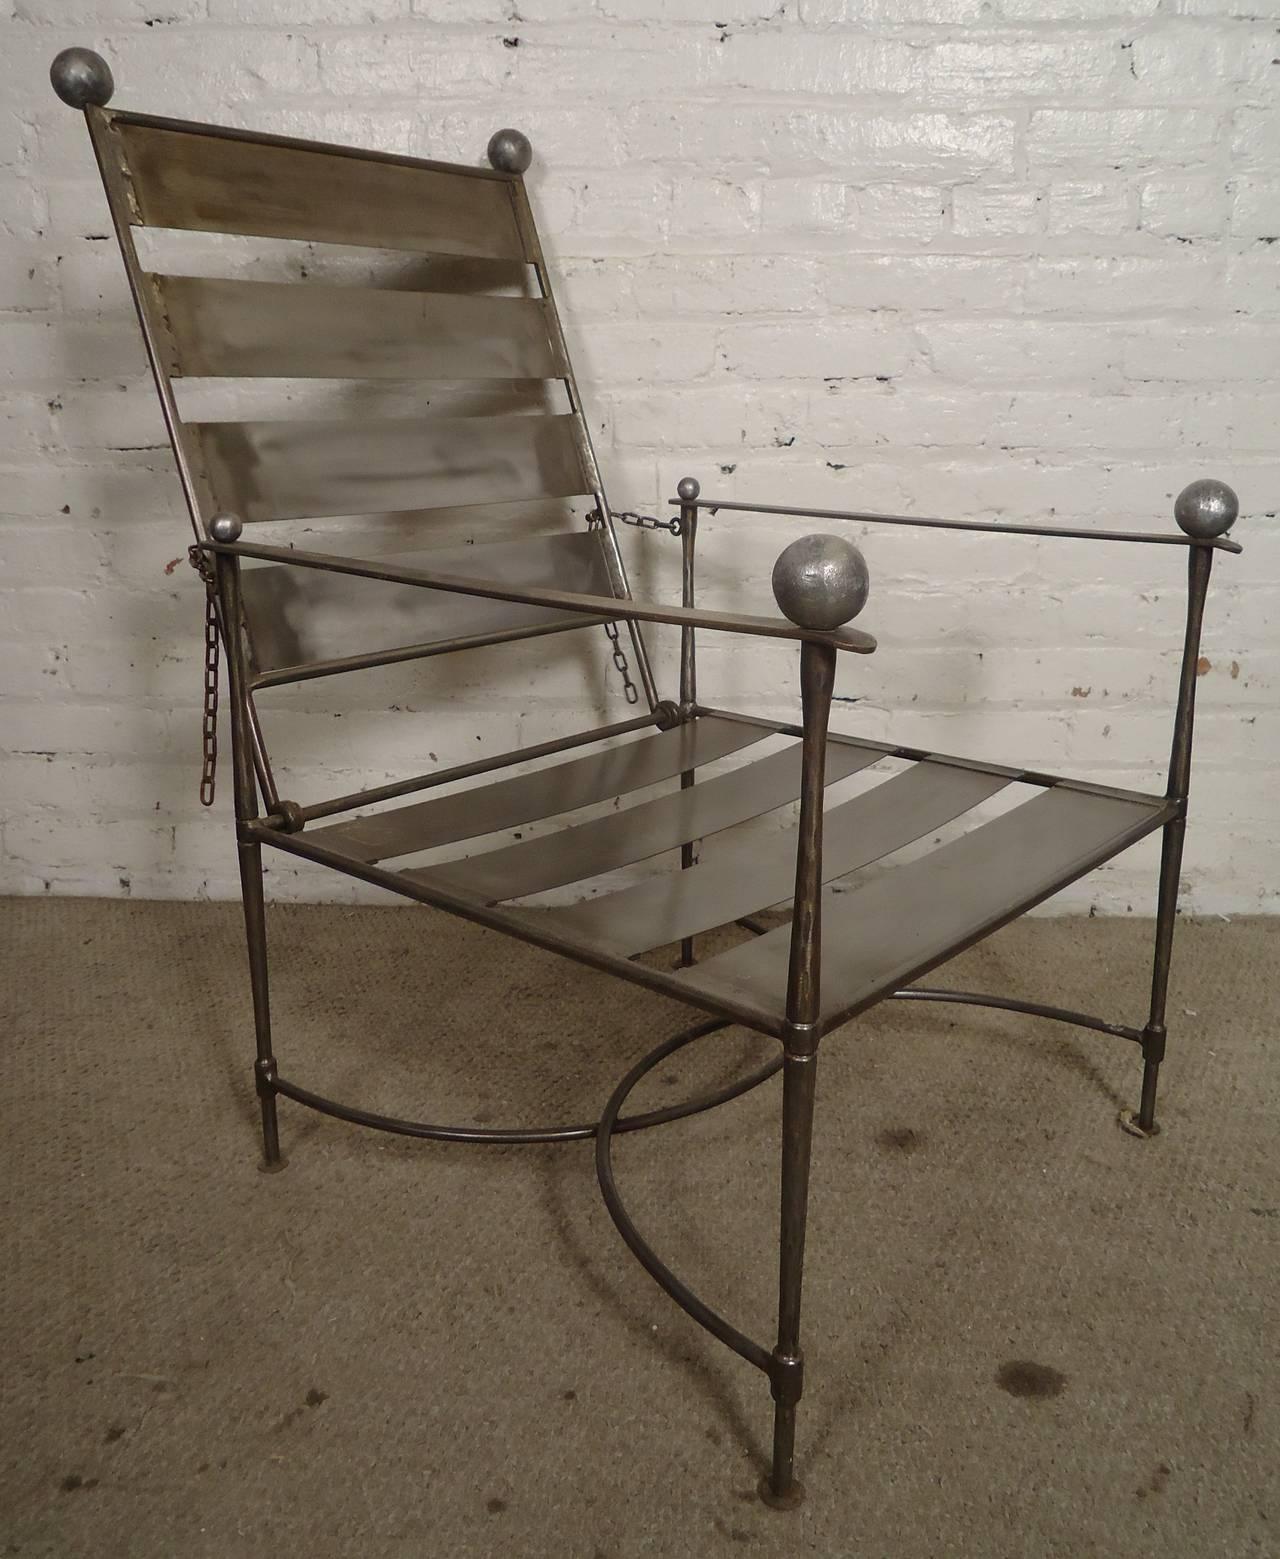 Unusual Pair Of Industrial Slatted Folding Metal Armchairs